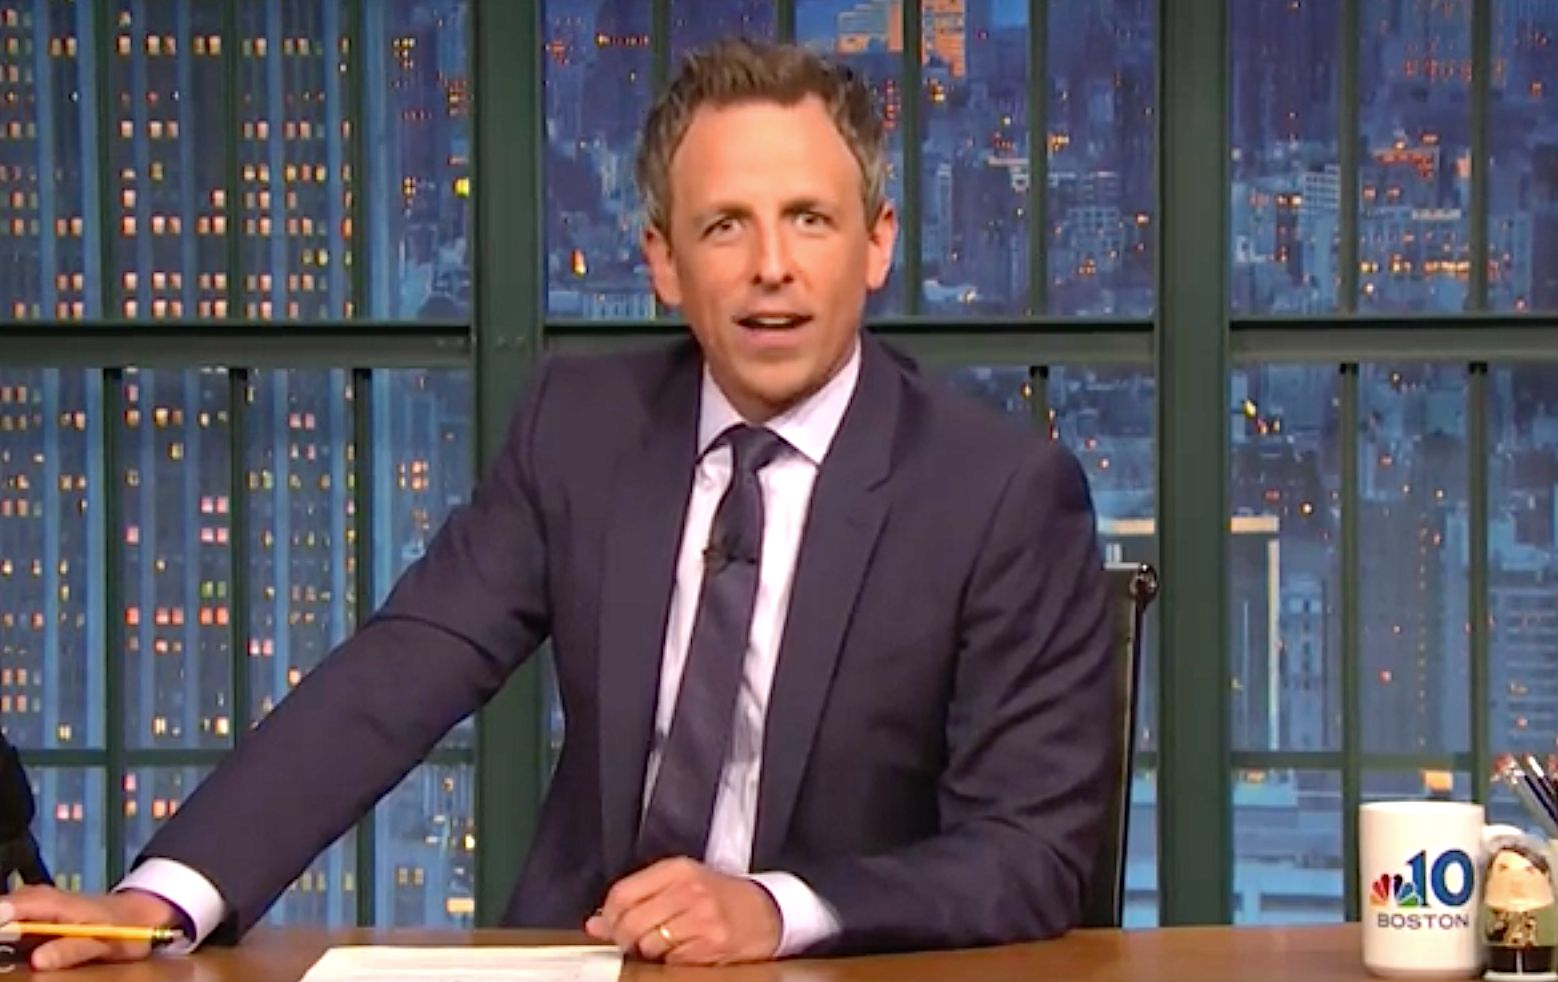 Seth Meyers Uses Cute Dog To Make Serious Point About Trump's 'Rotted-Out